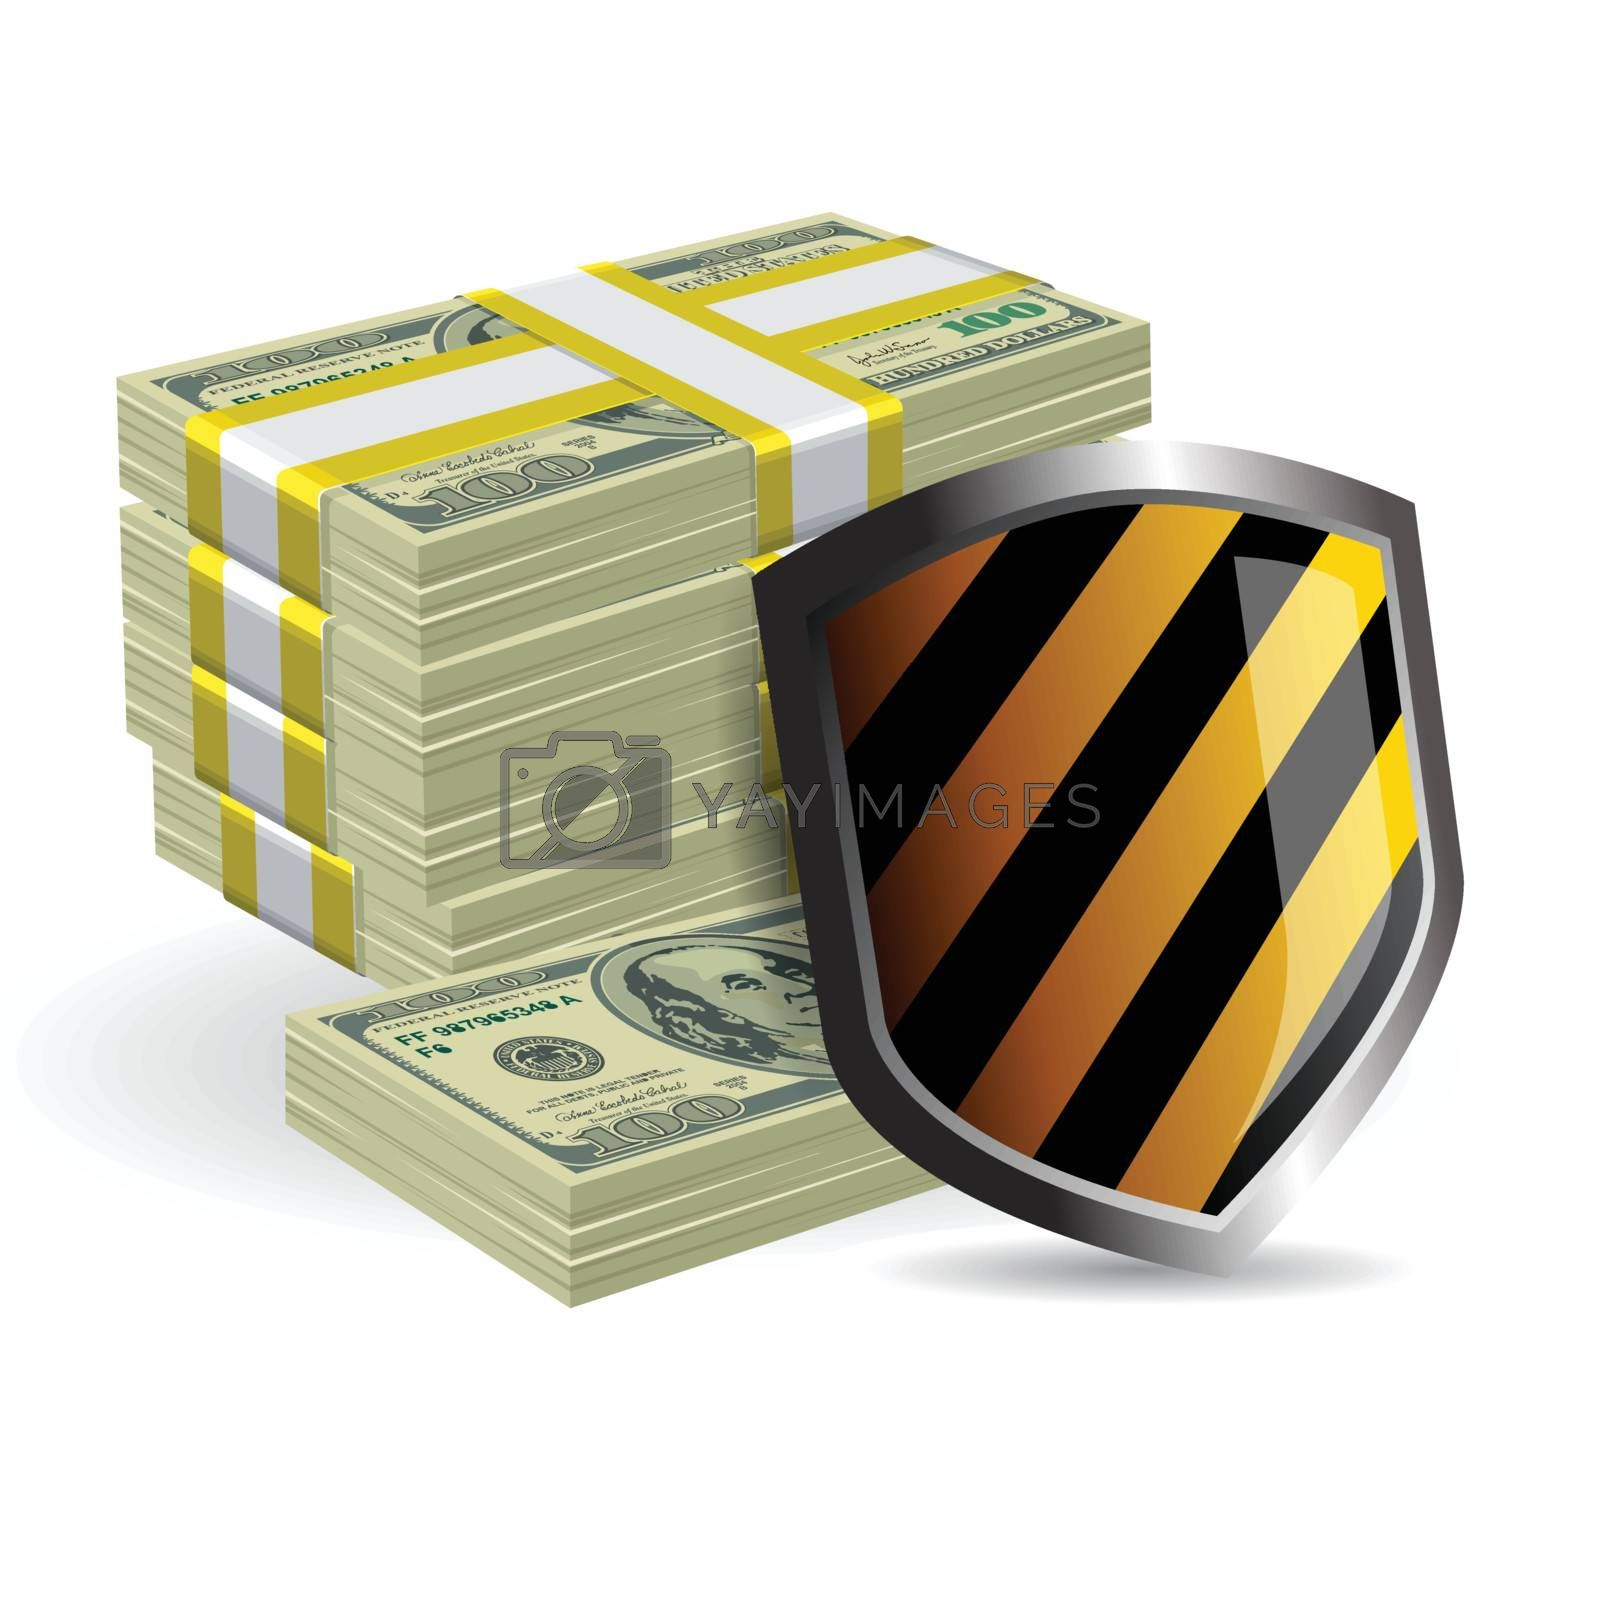 security shield protecting money business concept by nirots